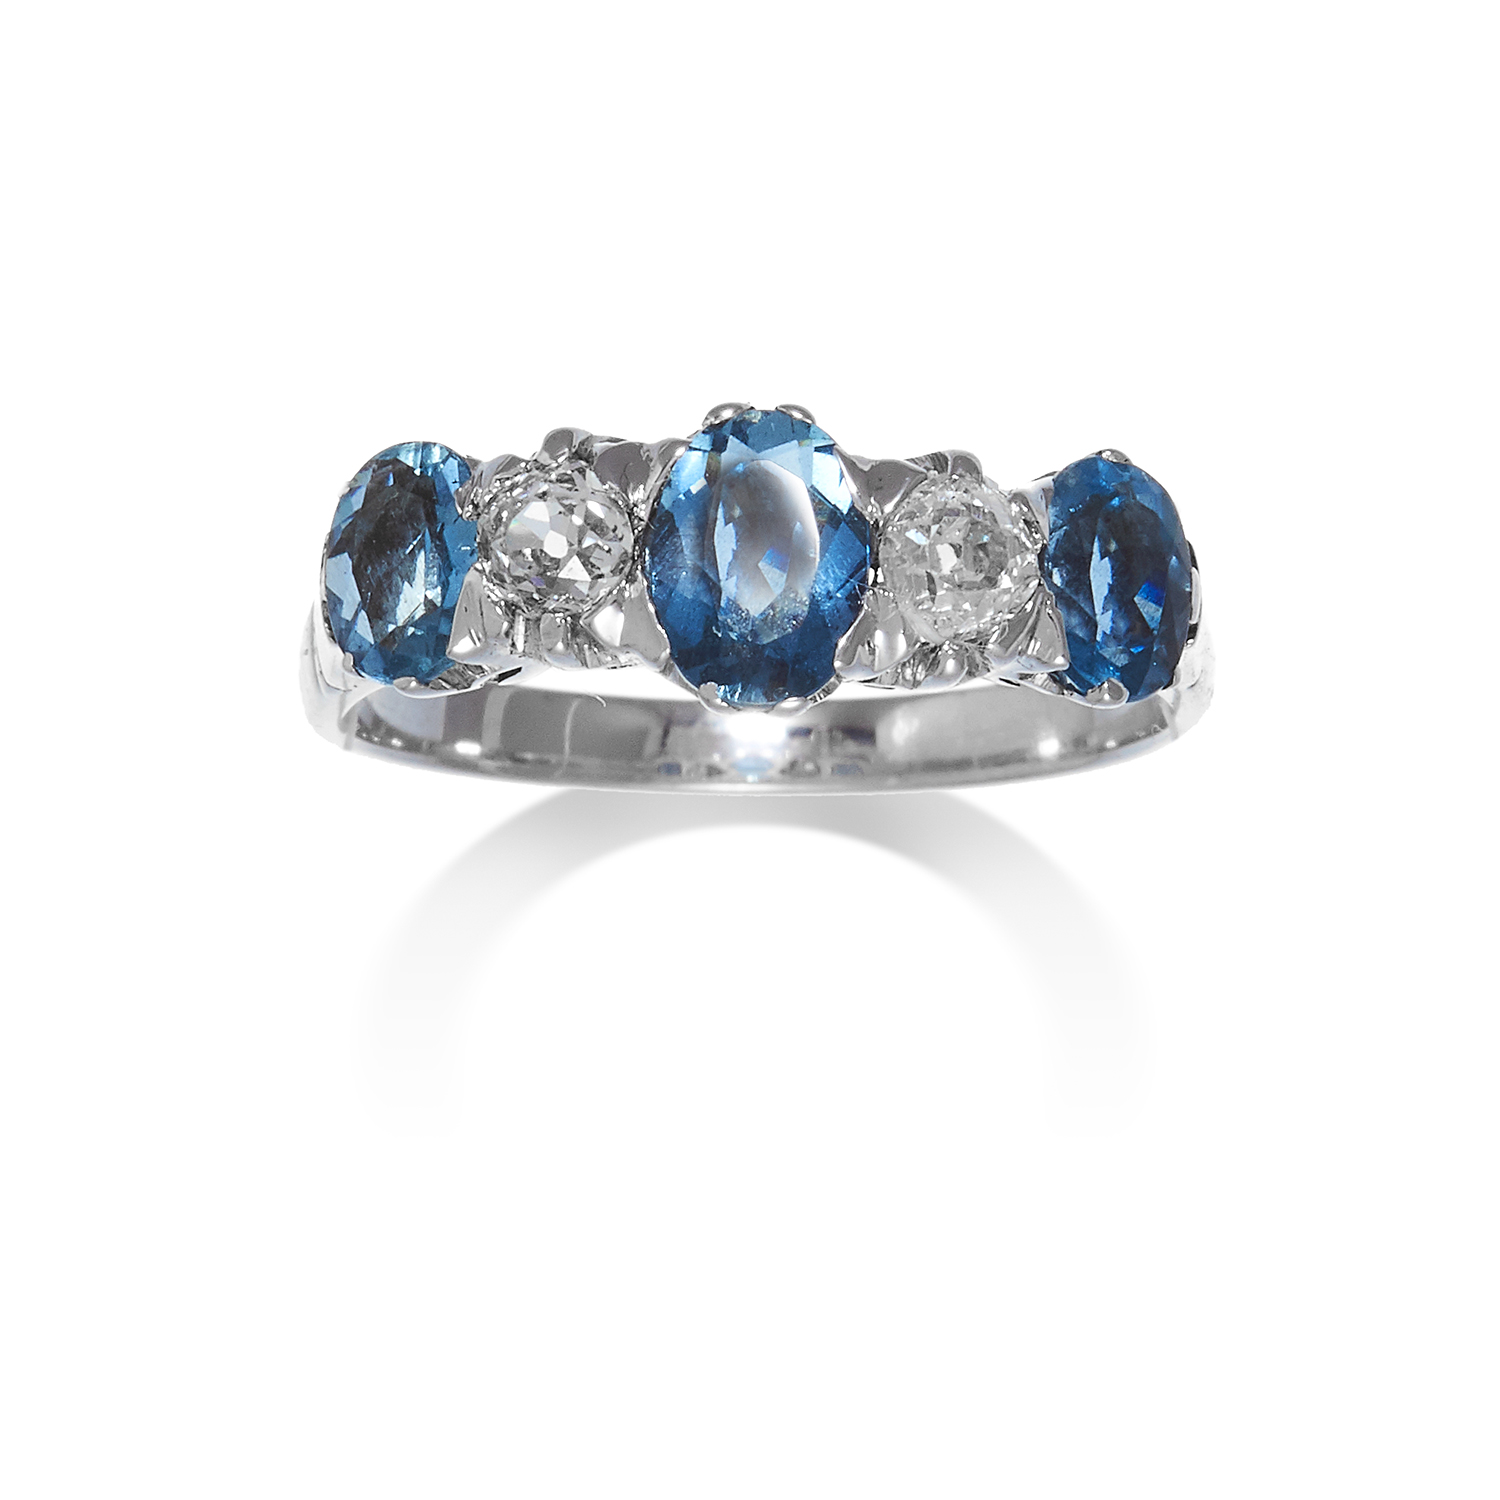 Los 6 - AN AQUAMARINE AND DIAMOND RING in white gold or platinum, set with a row of five alternating